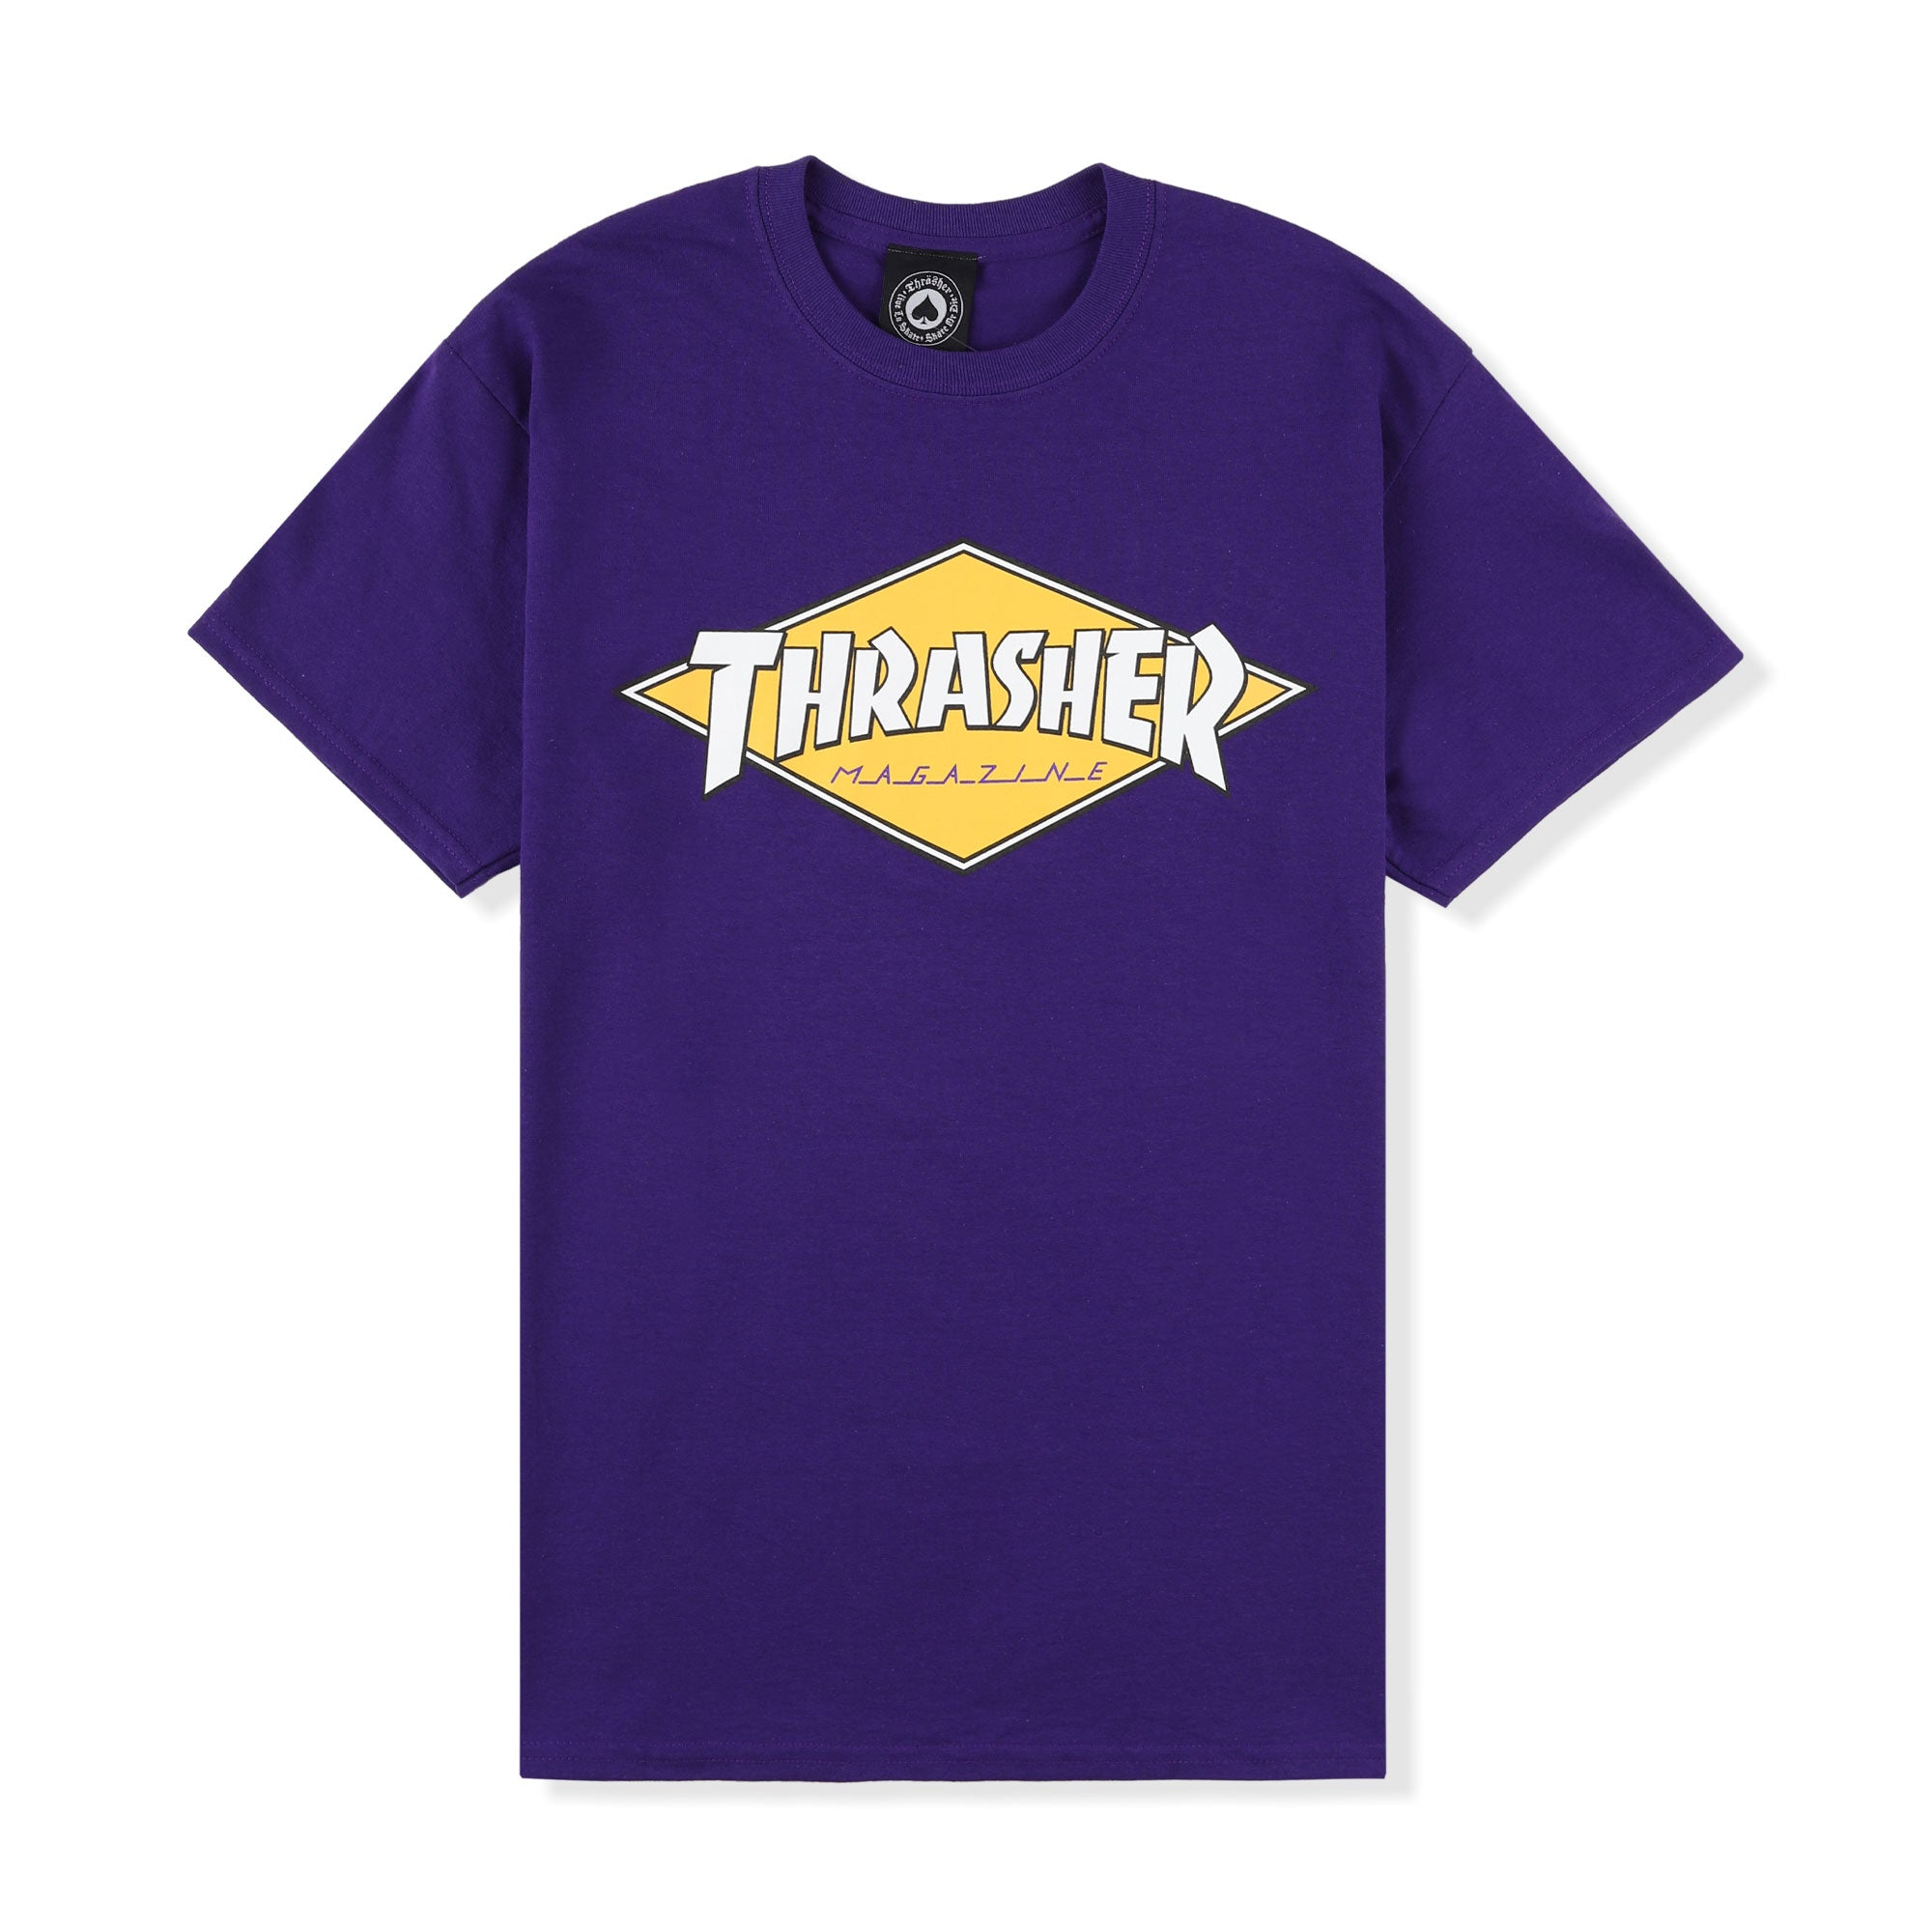 Thrasher Diamond Logo Tee Product Photo #1